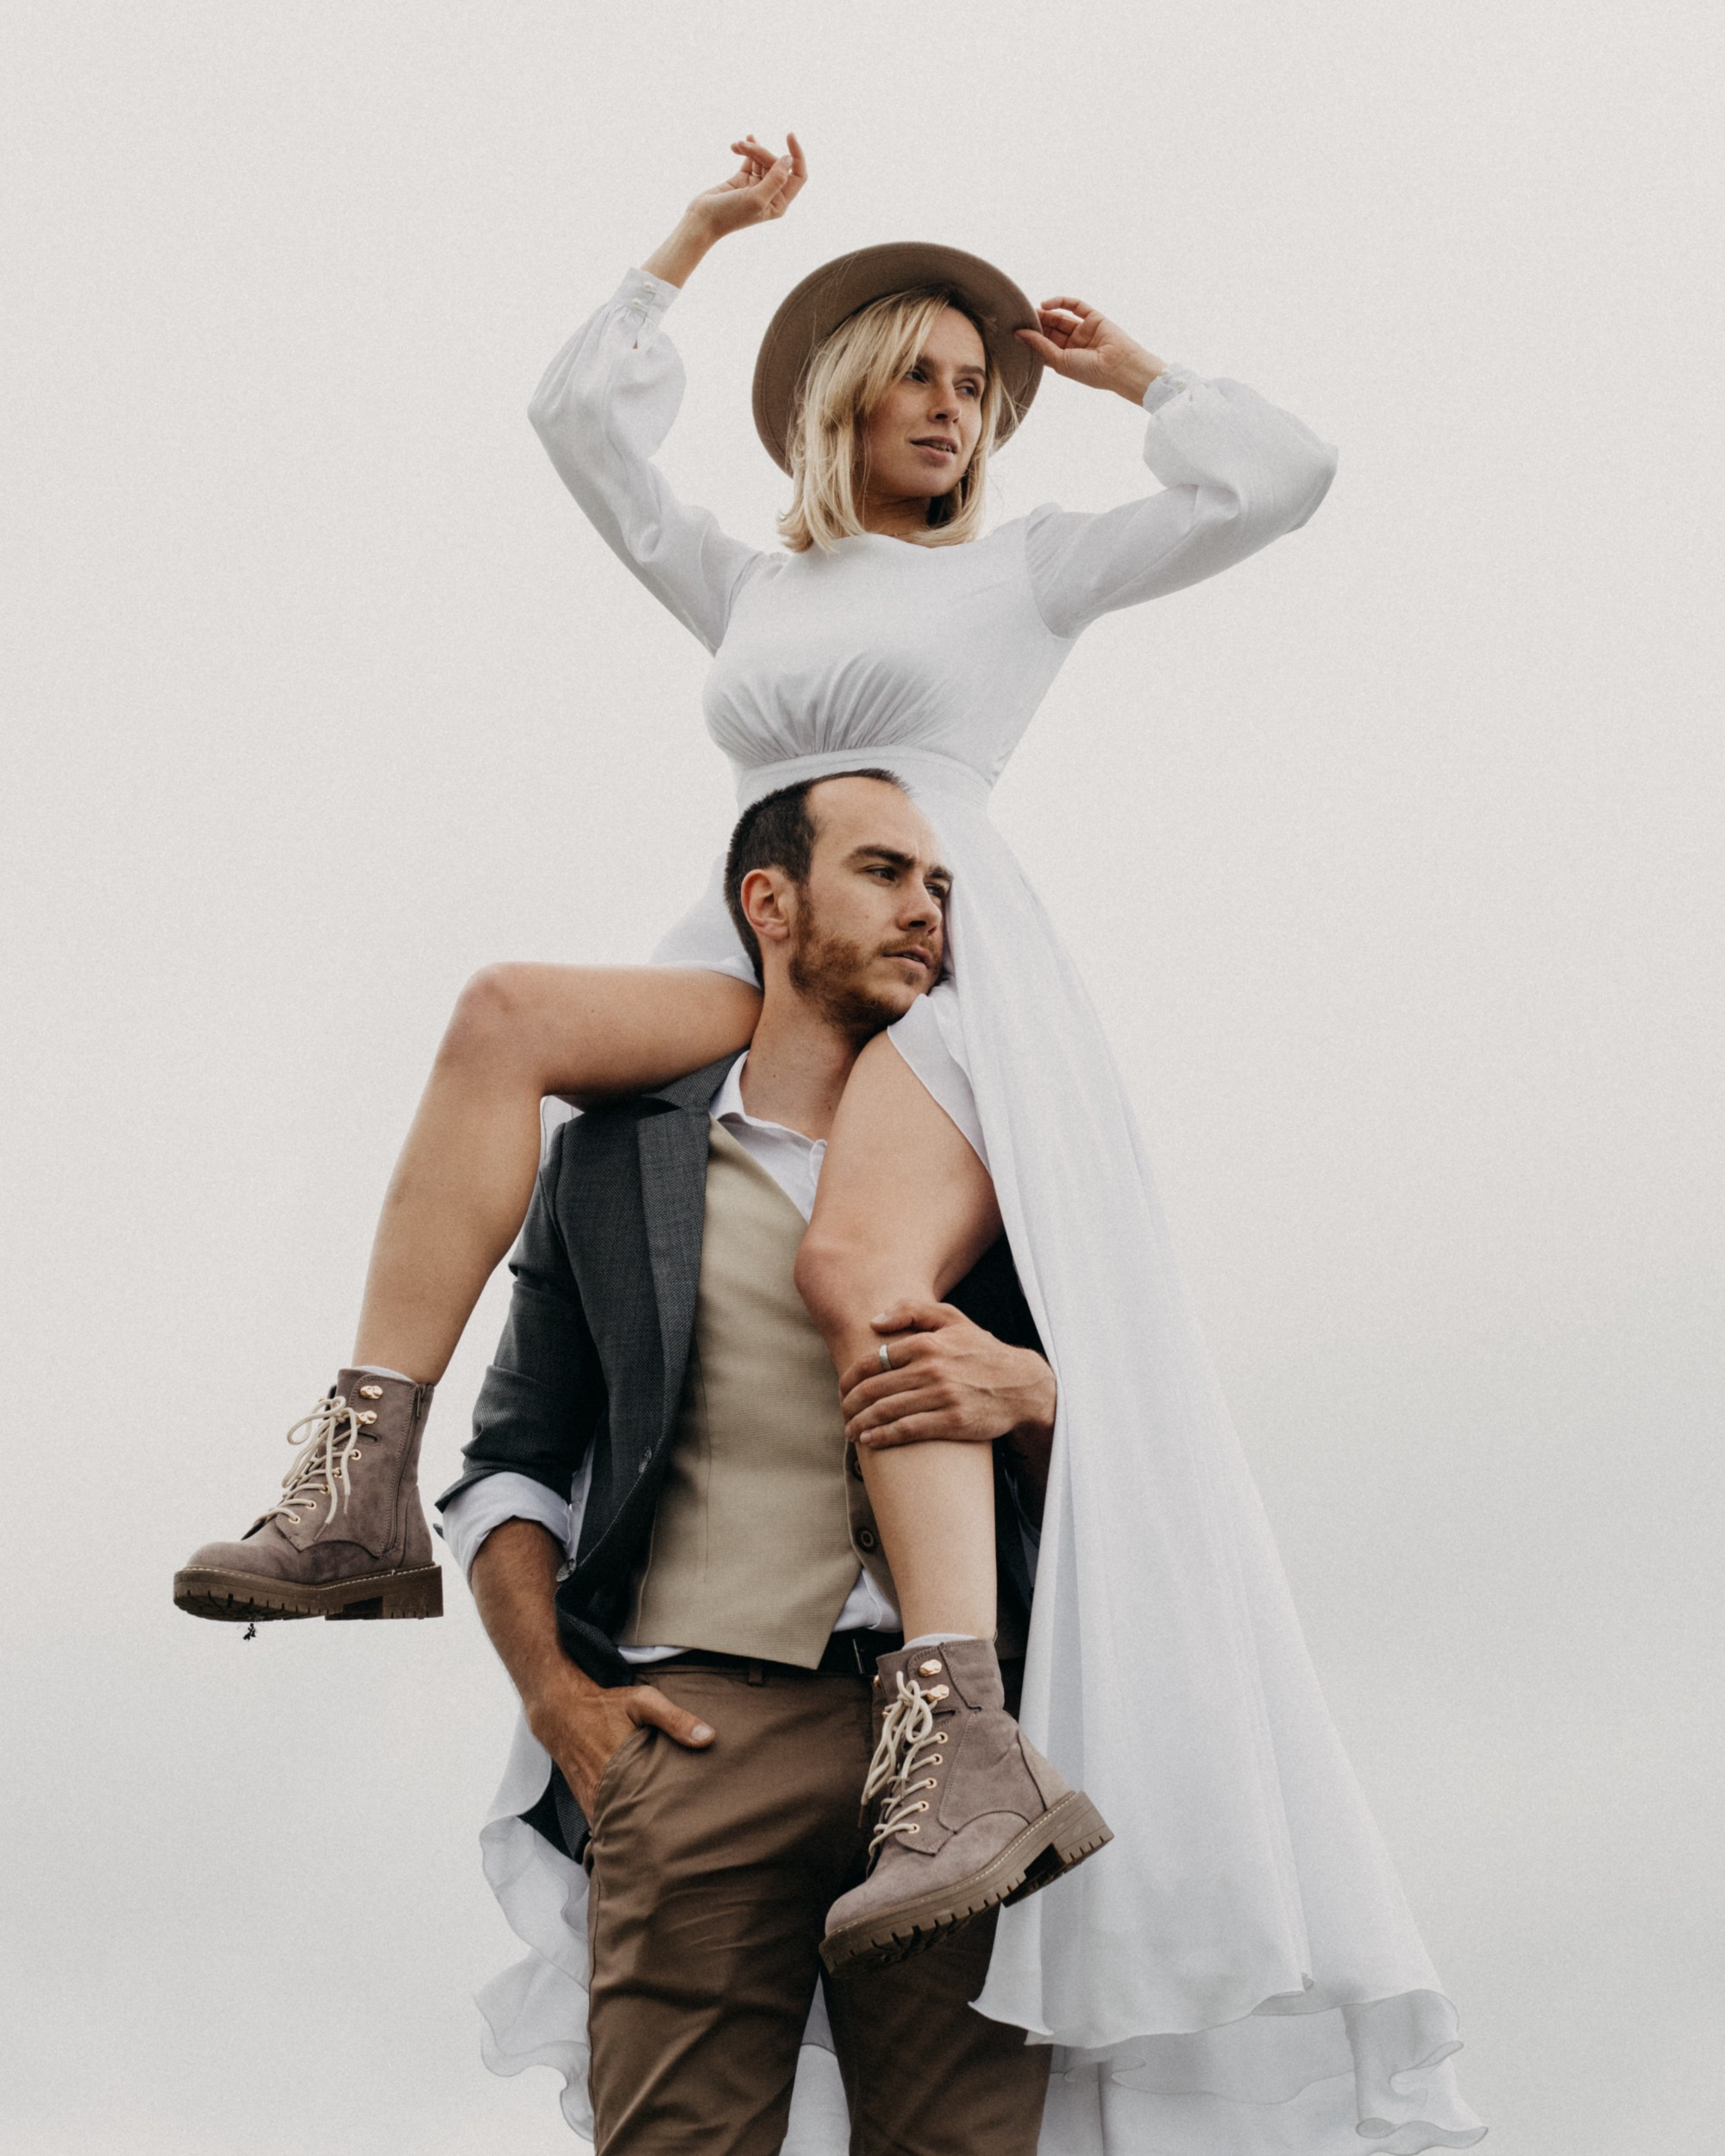 Woman in white dress, sitting on man's shoulders.